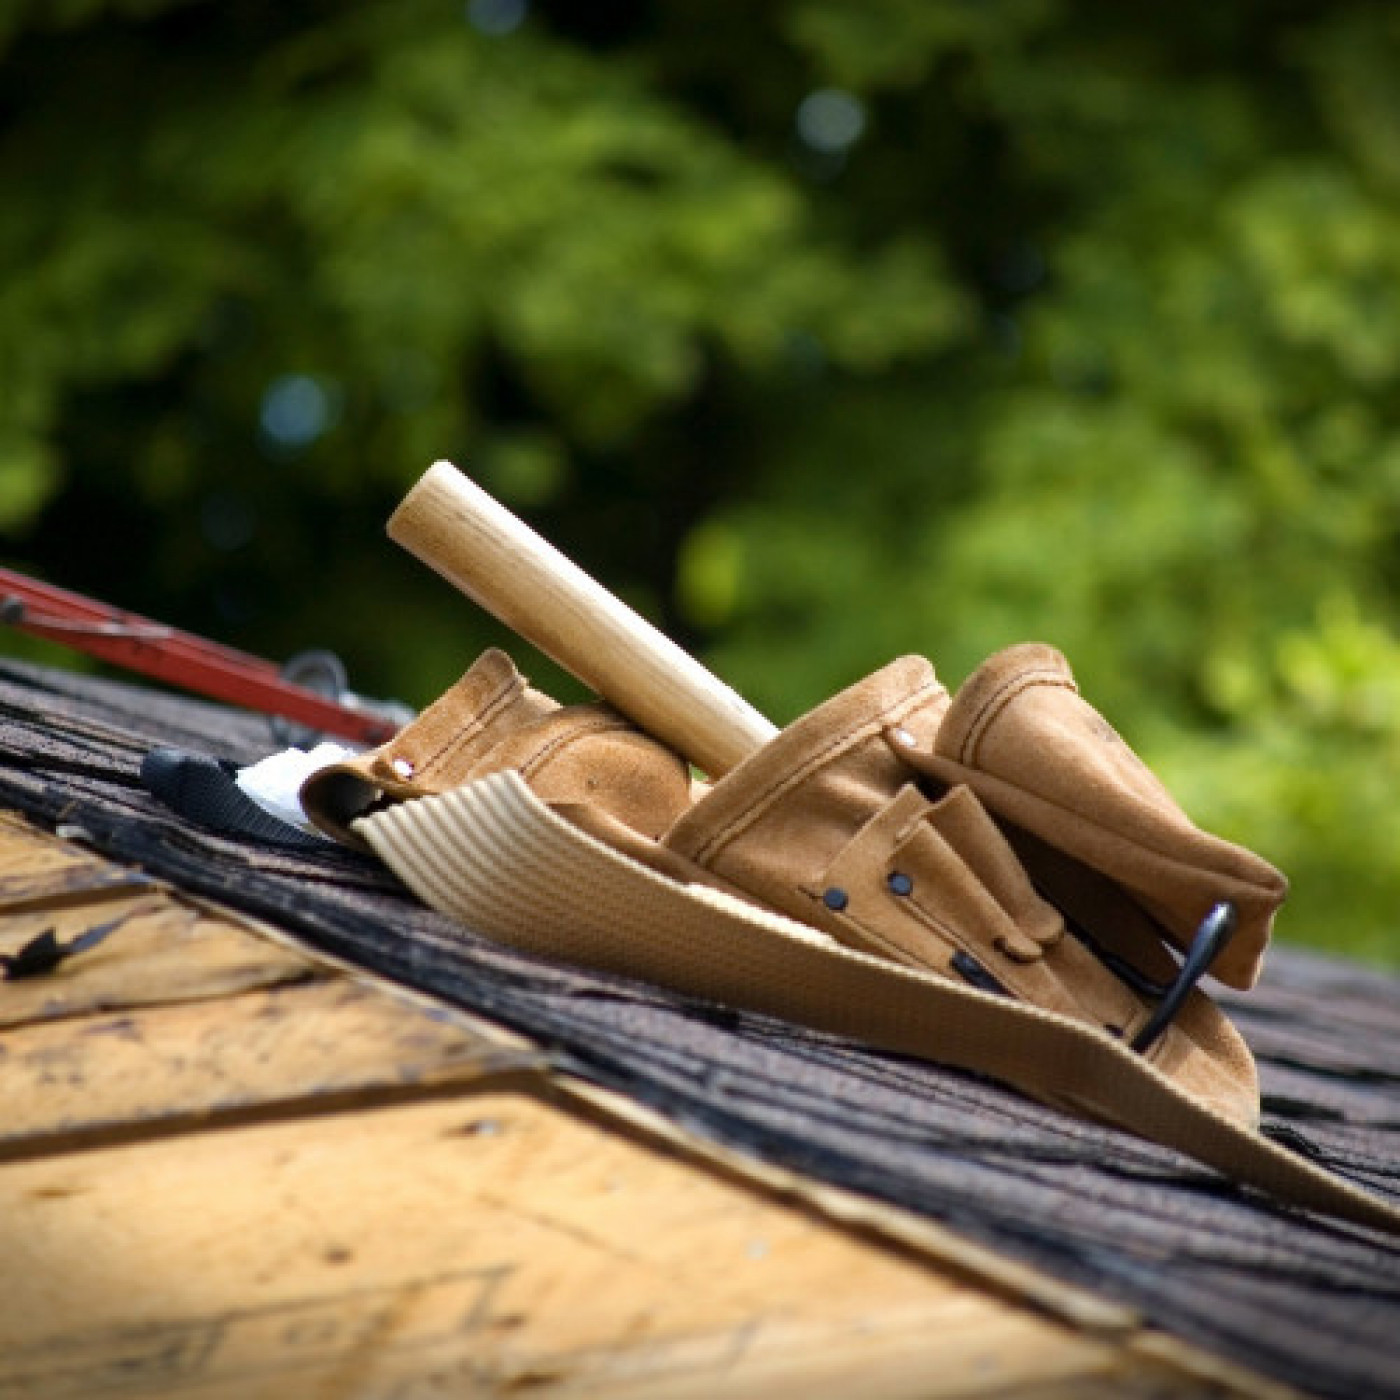 Hiring a Roofer? Do Your Research!